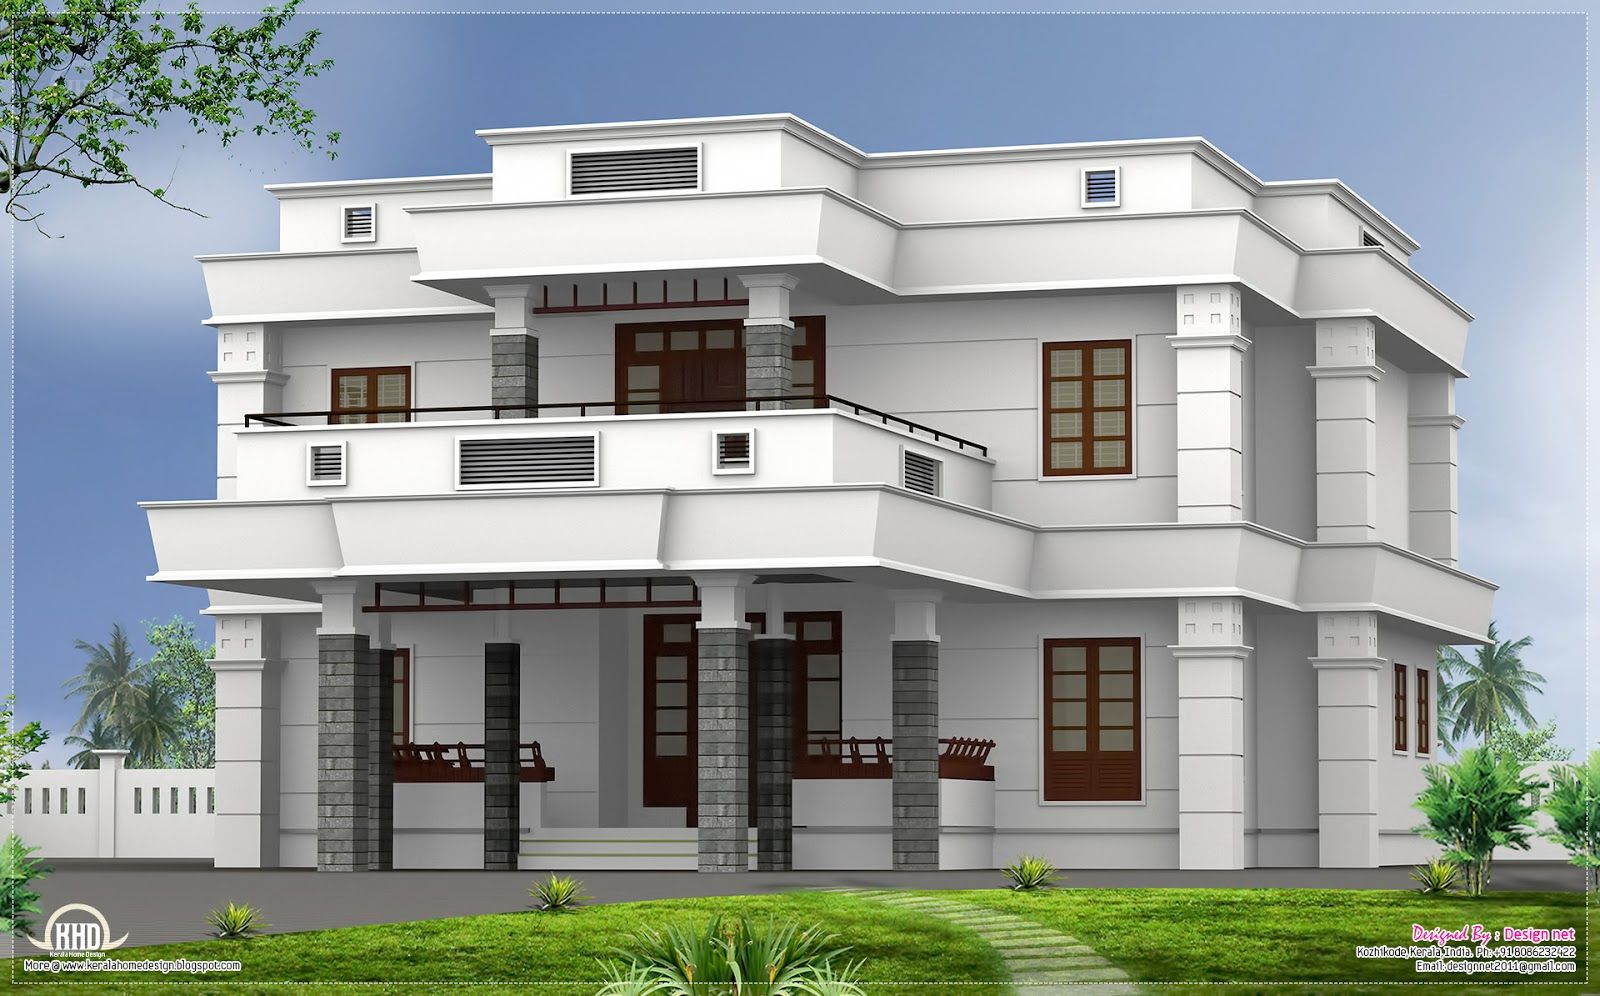 Flat roof homes designs bhk modern flat roof house Indian house exterior design